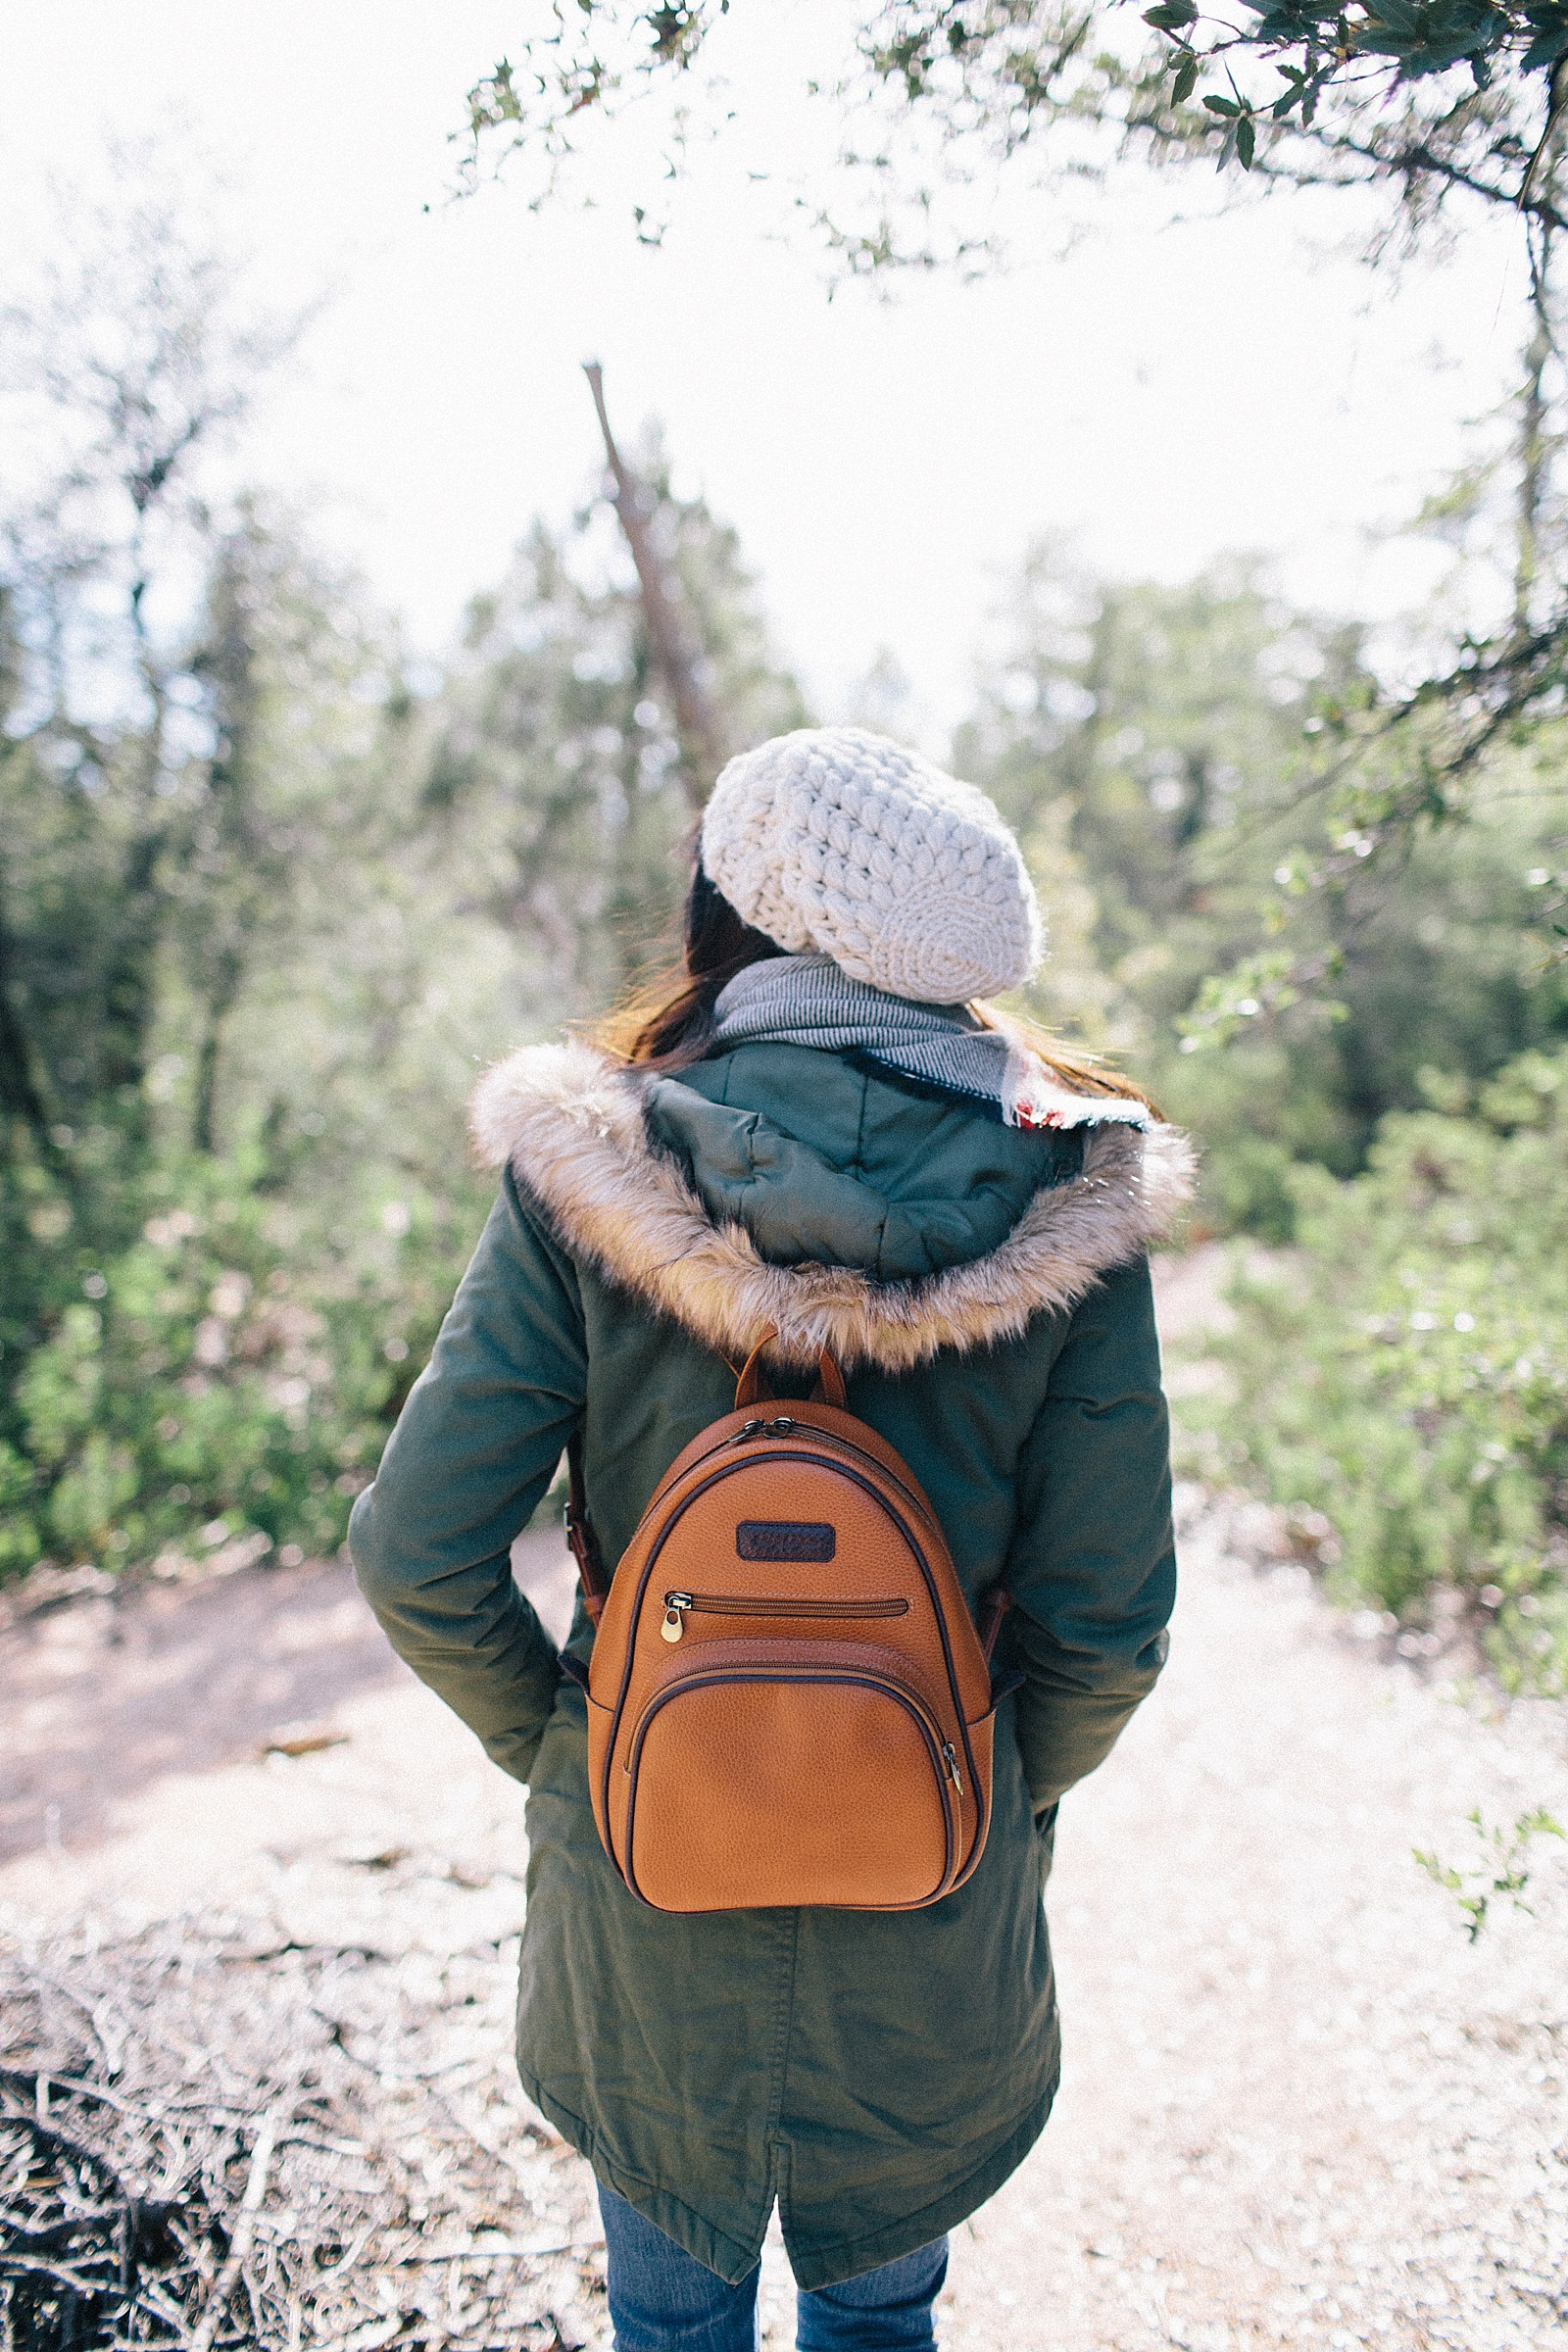 payson-arizona-phoenix-blogger-lifestyle-fashion-beauty-leather-backpack-travel-capolavori-3189